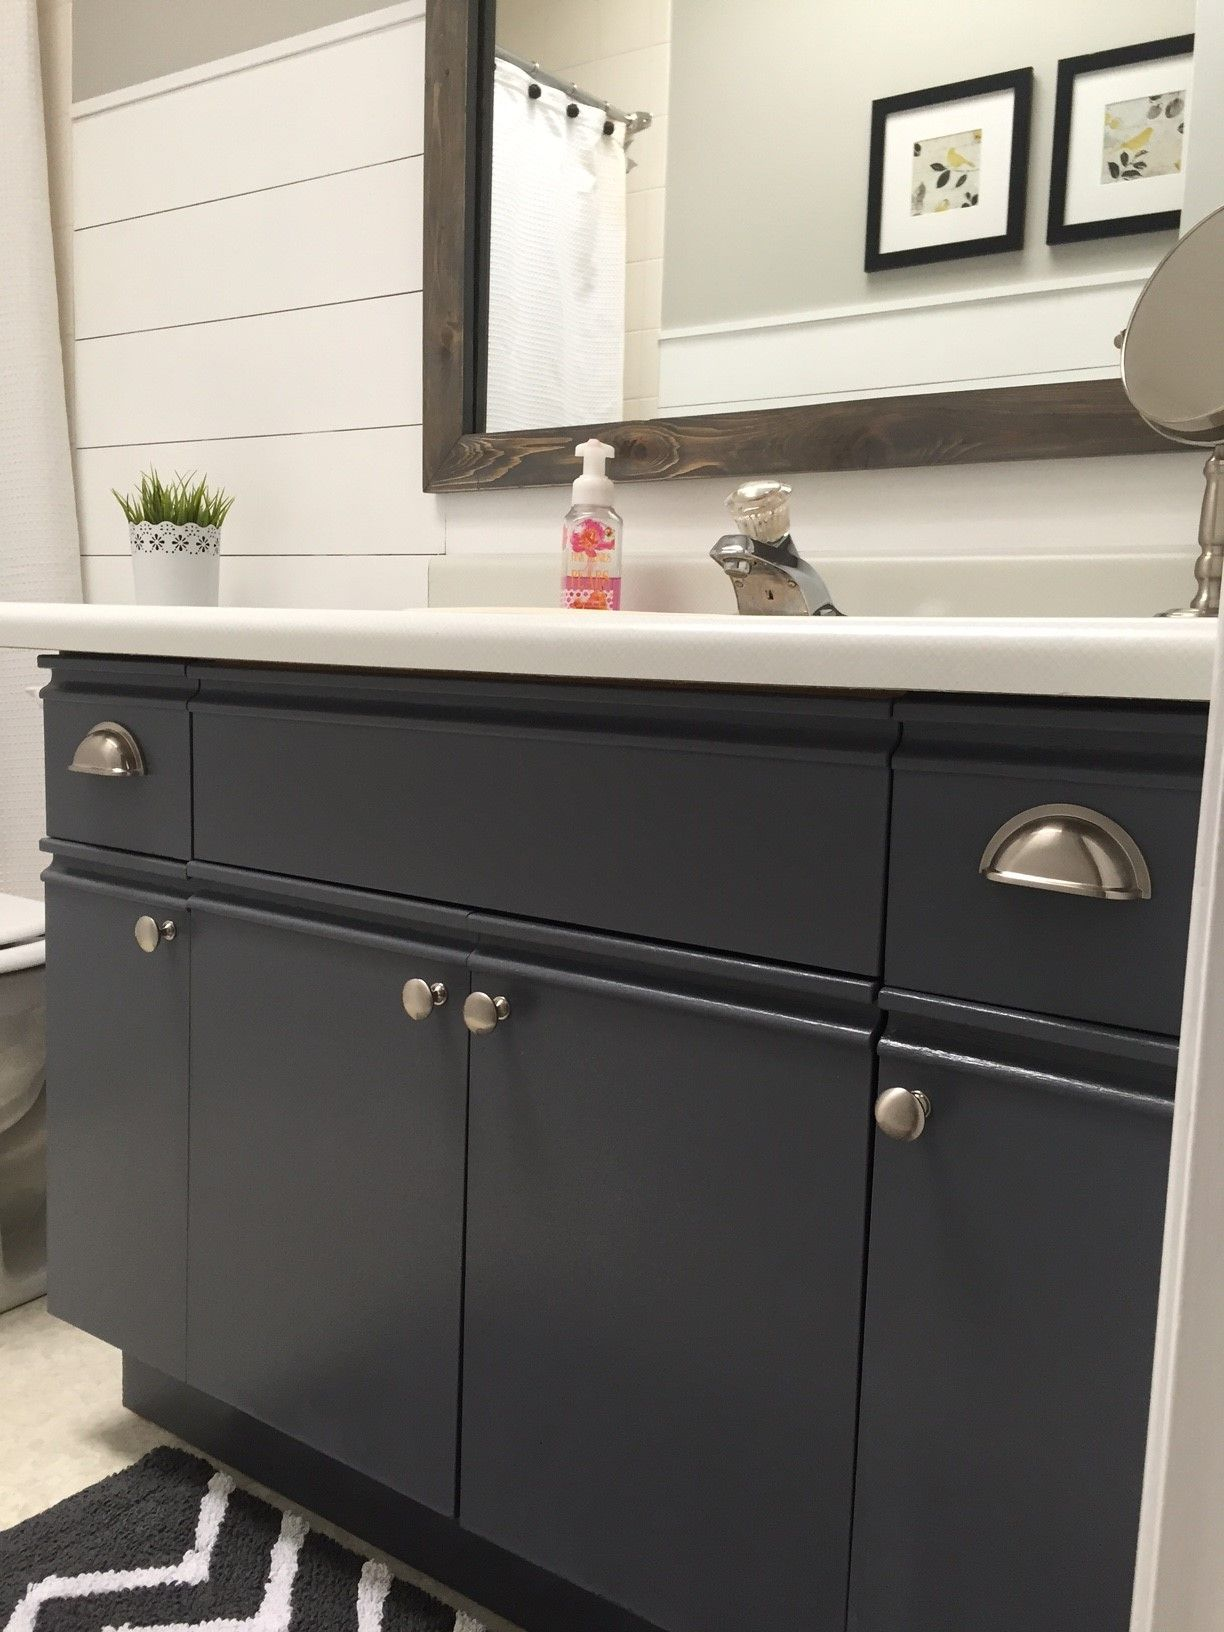 Bathroom Update How To Paint Laminate Cabinets Laminate Cabinets Countertop And Vanities